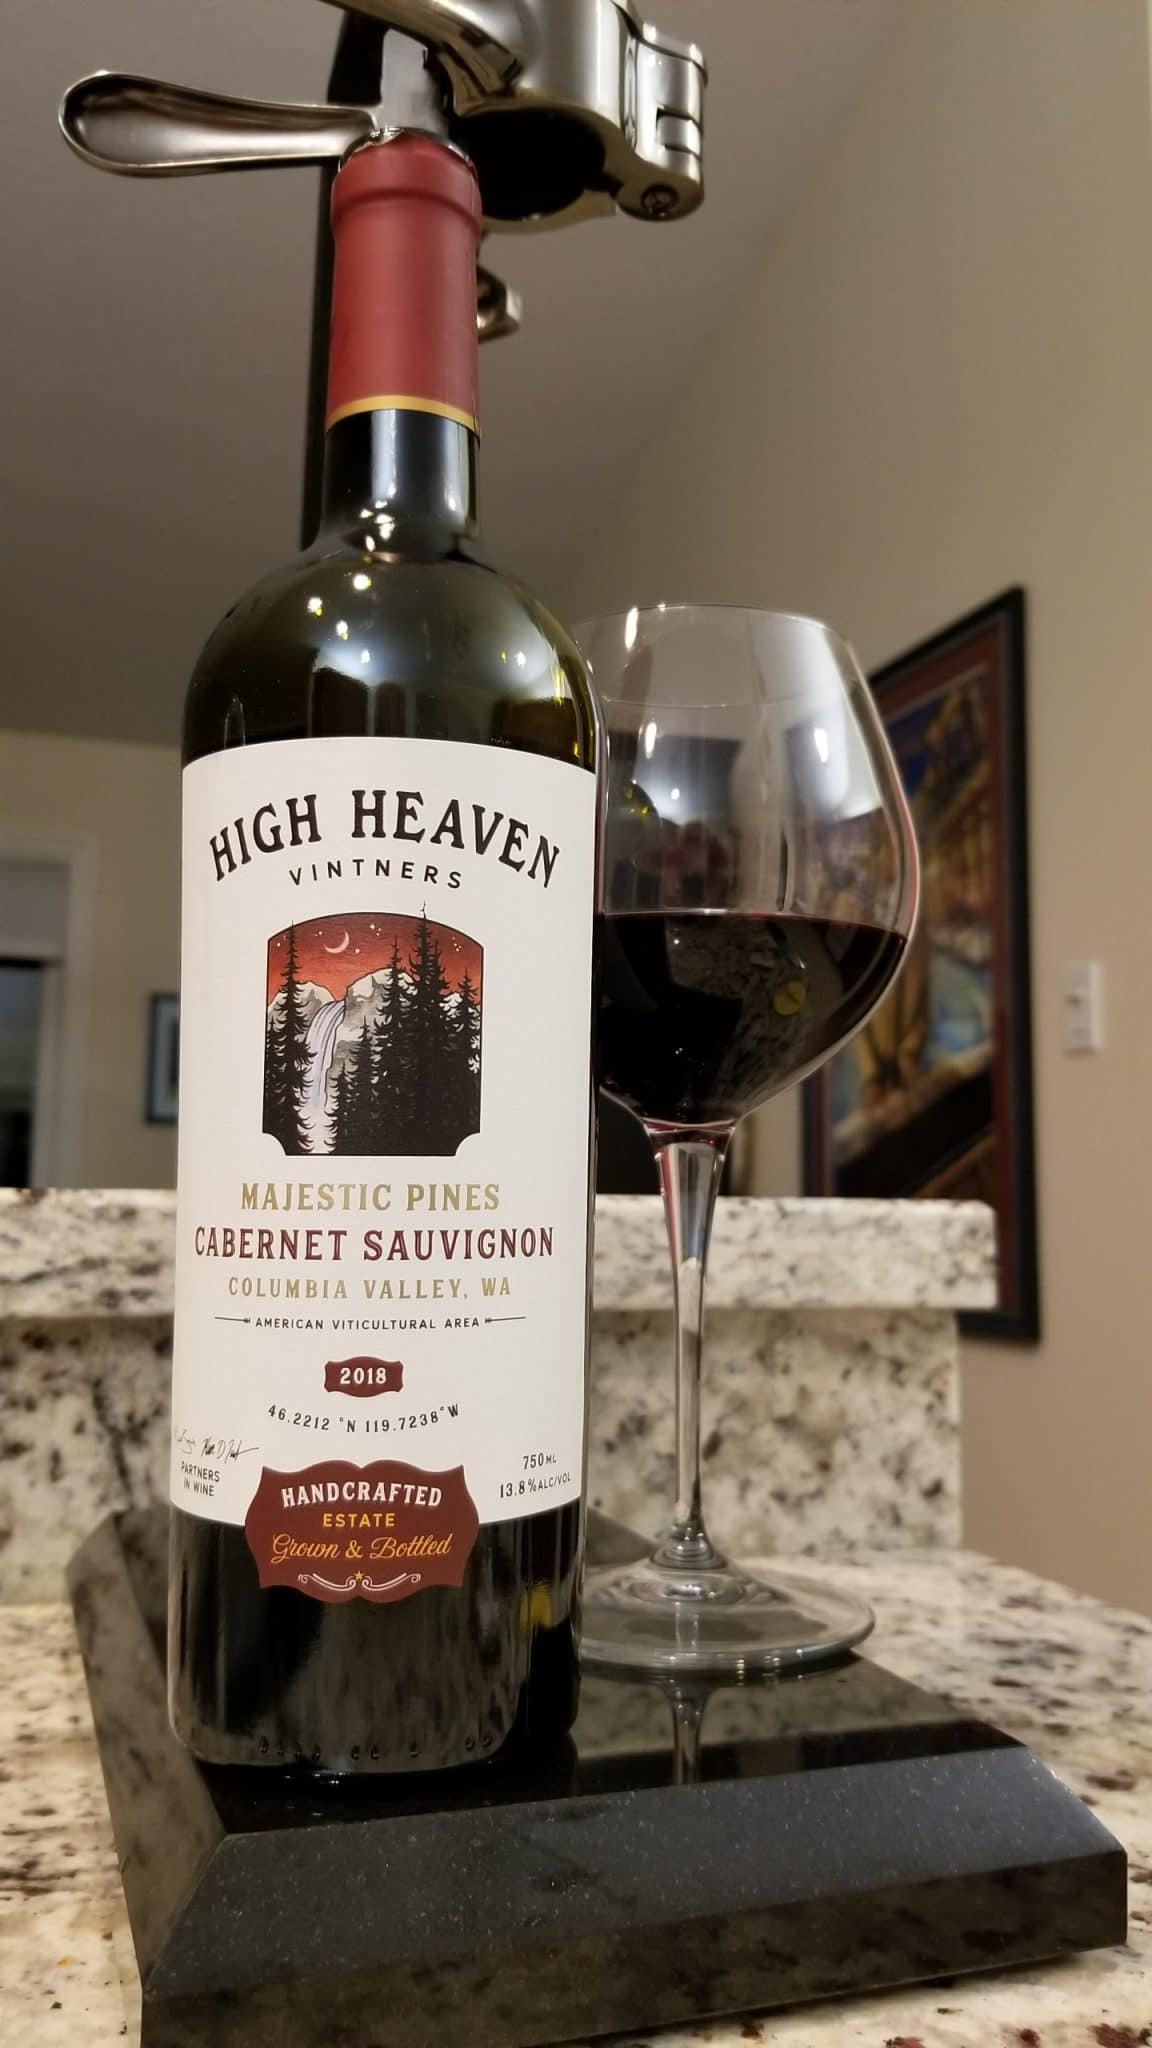 $19.95 - High Heaven Majestic Pines Cabernet Sauvignon 2018